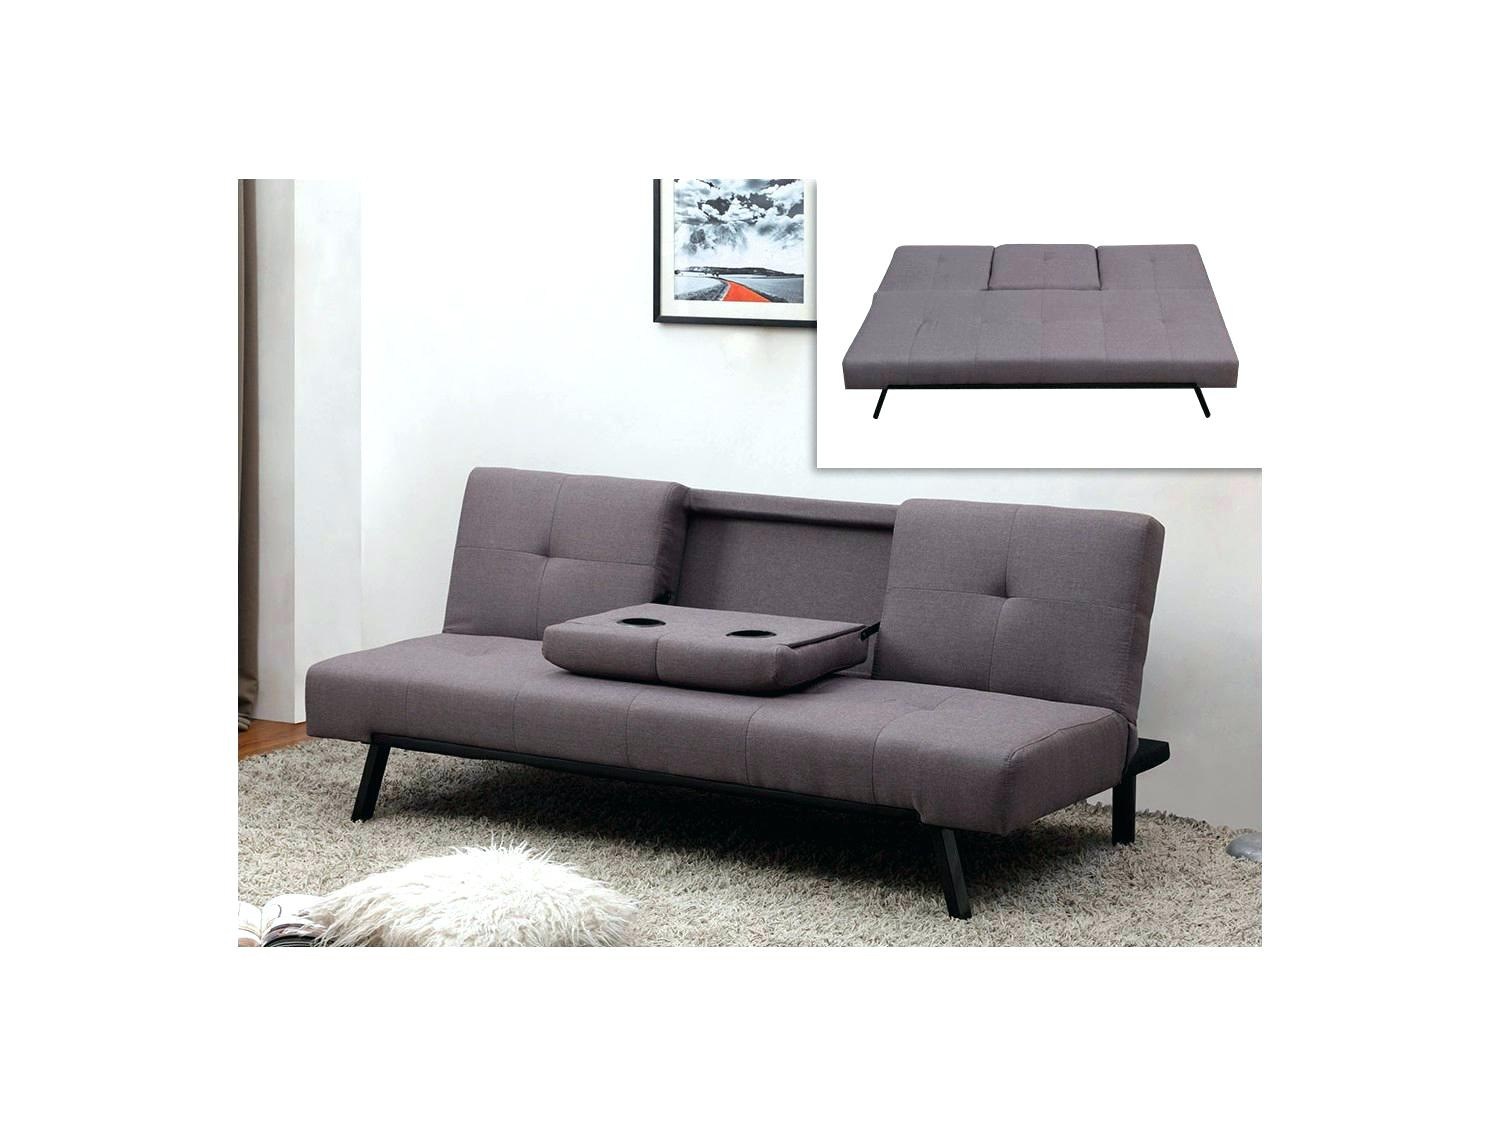 Housse Clic Clac Fly Beau Collection Banquette Clic Clac top Dallas Banquette Clicclac Tissu Taupe with